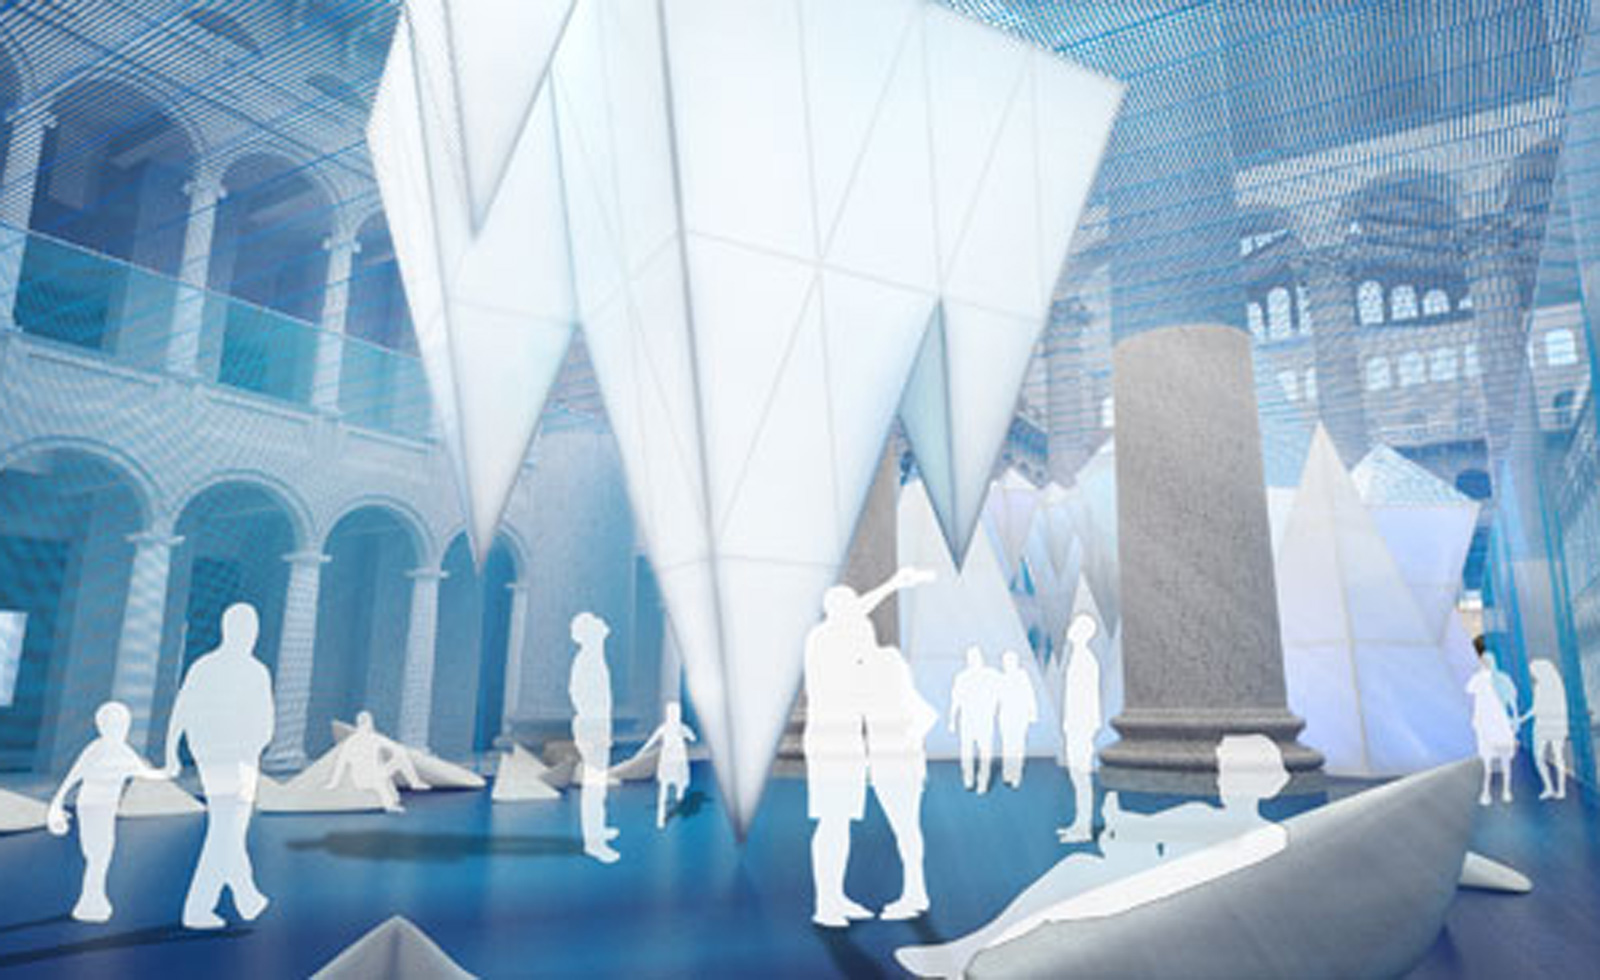 Renderings by James Corner Field Operations, courtesy National Building Museum.